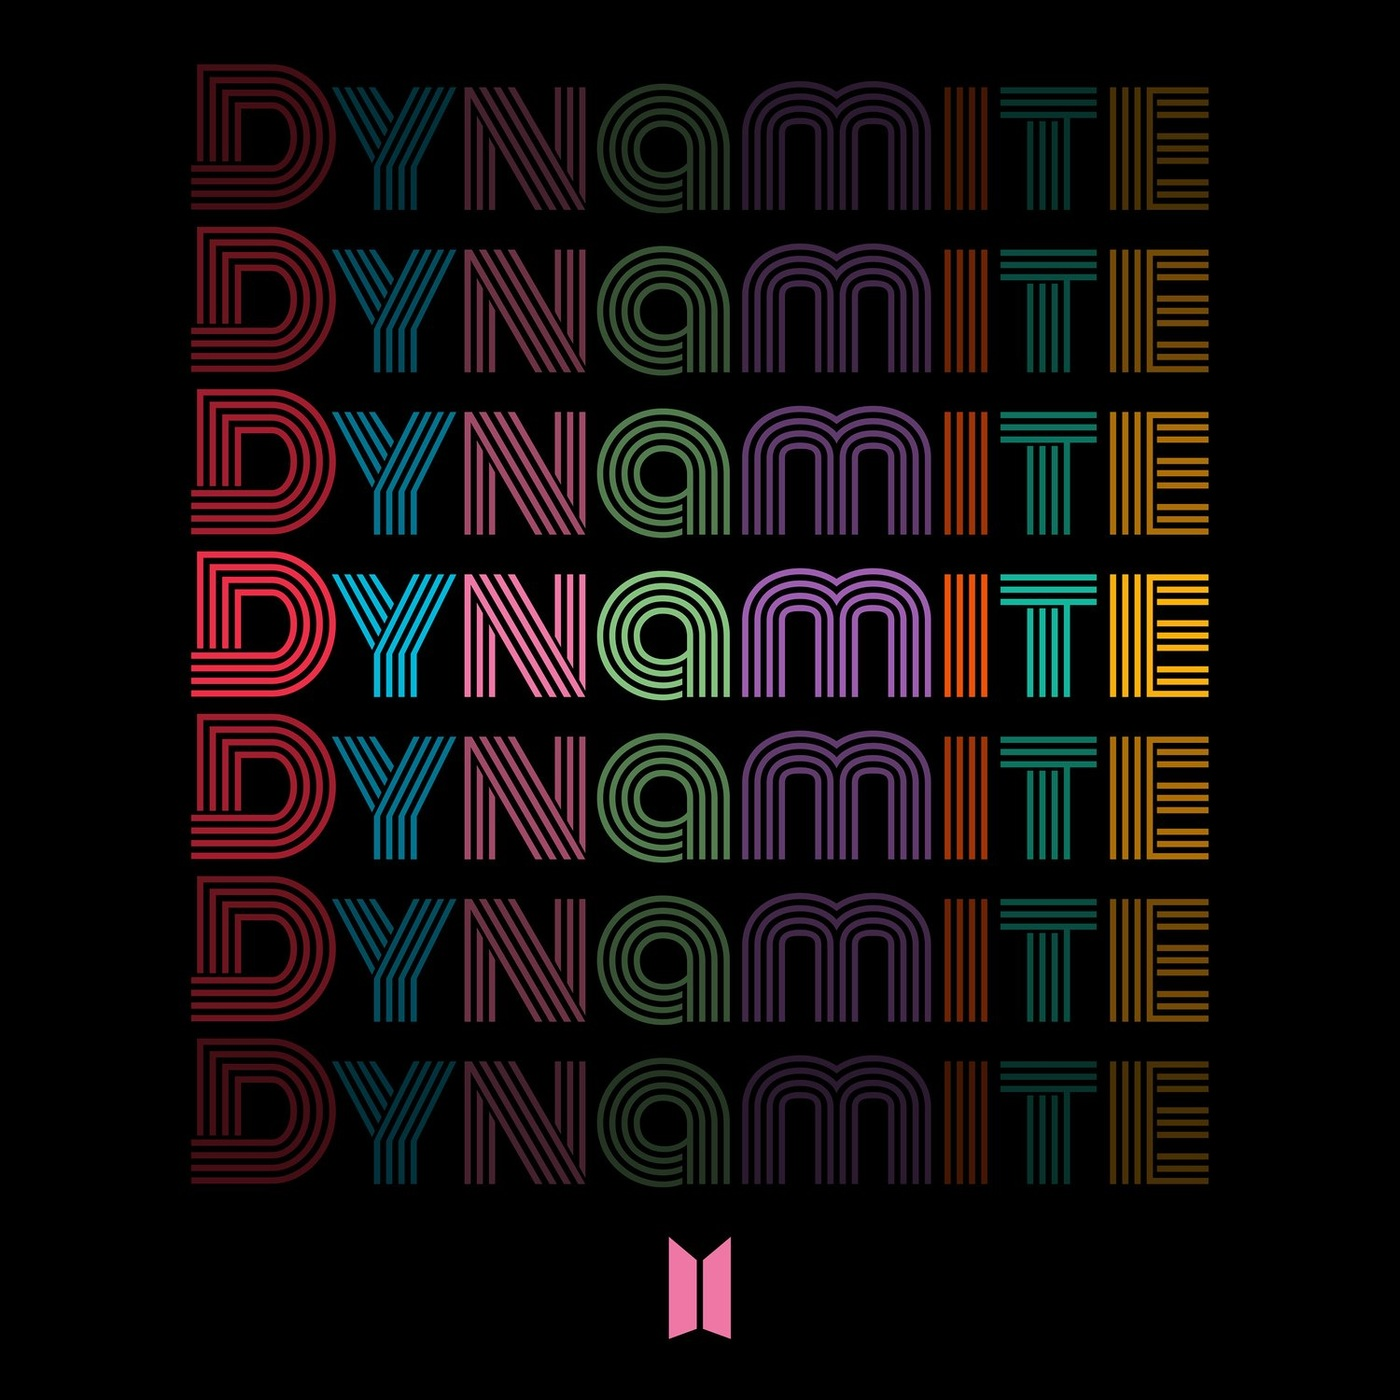 Art for Dynamite (Clean) by BTS